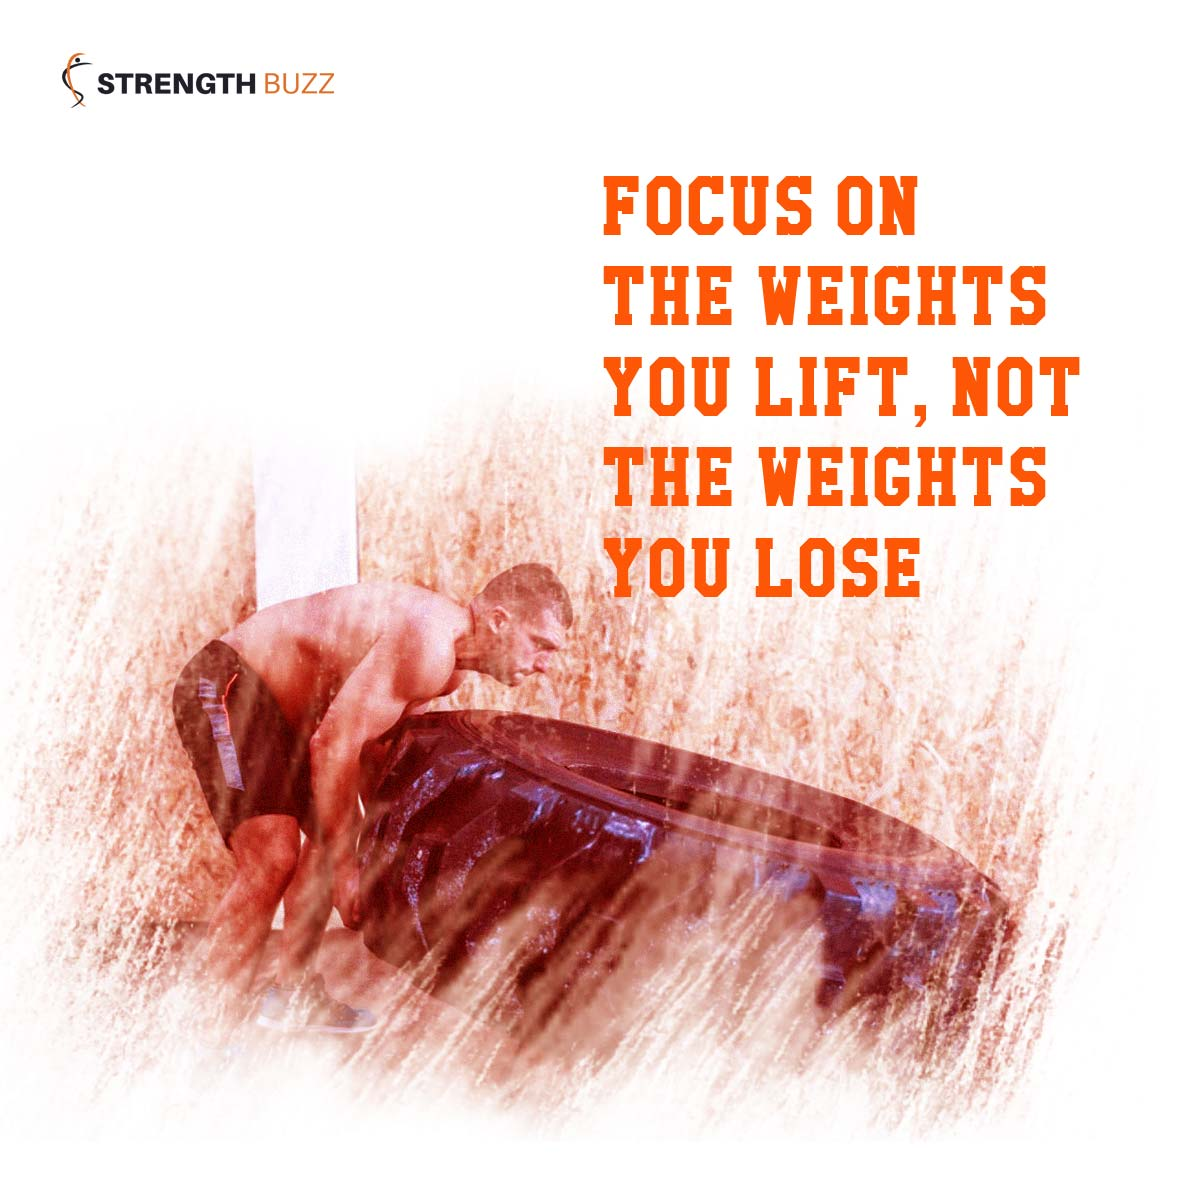 Gym Motivation Quotes - Focus on the weights you lift, not the weights you lose